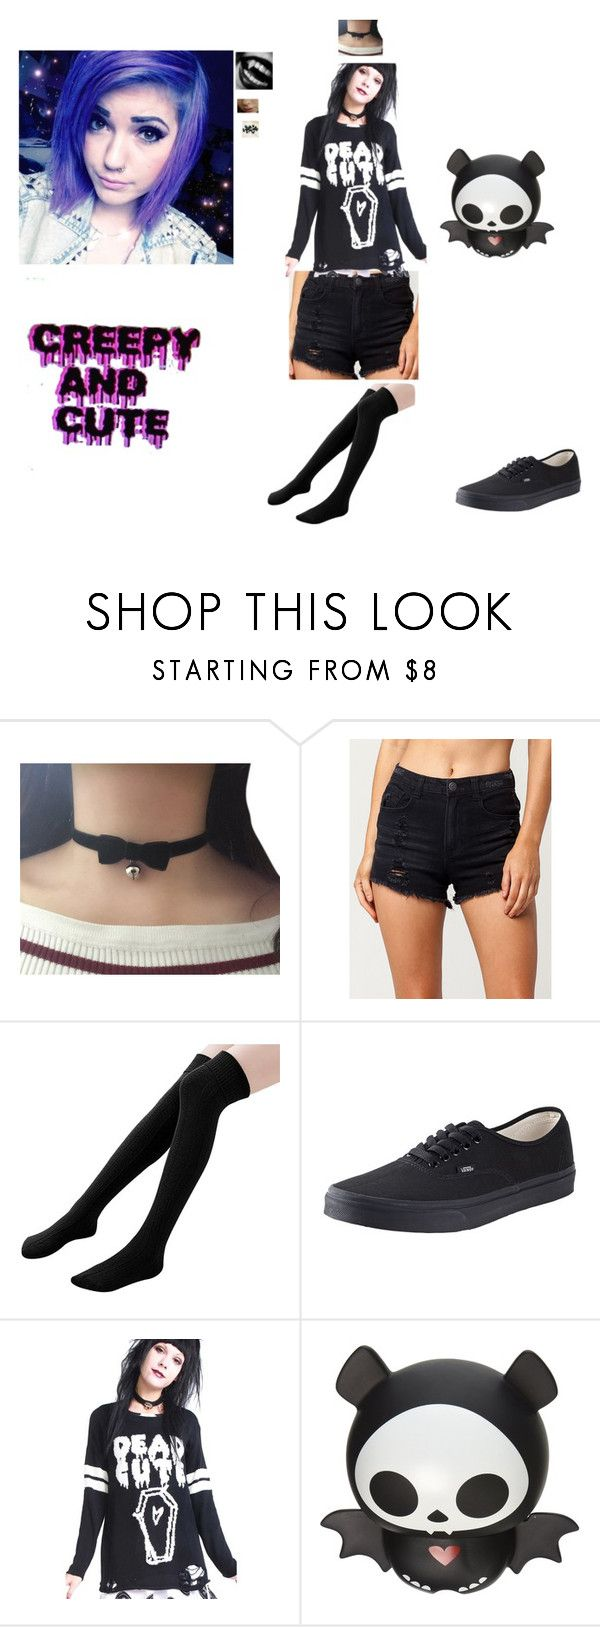 """""""hey guys going to pc senior day (please support my patreon)"""" by poisonberrykitten ❤ liked on Polyvore featuring Almost Famous, Vans and KAOS"""